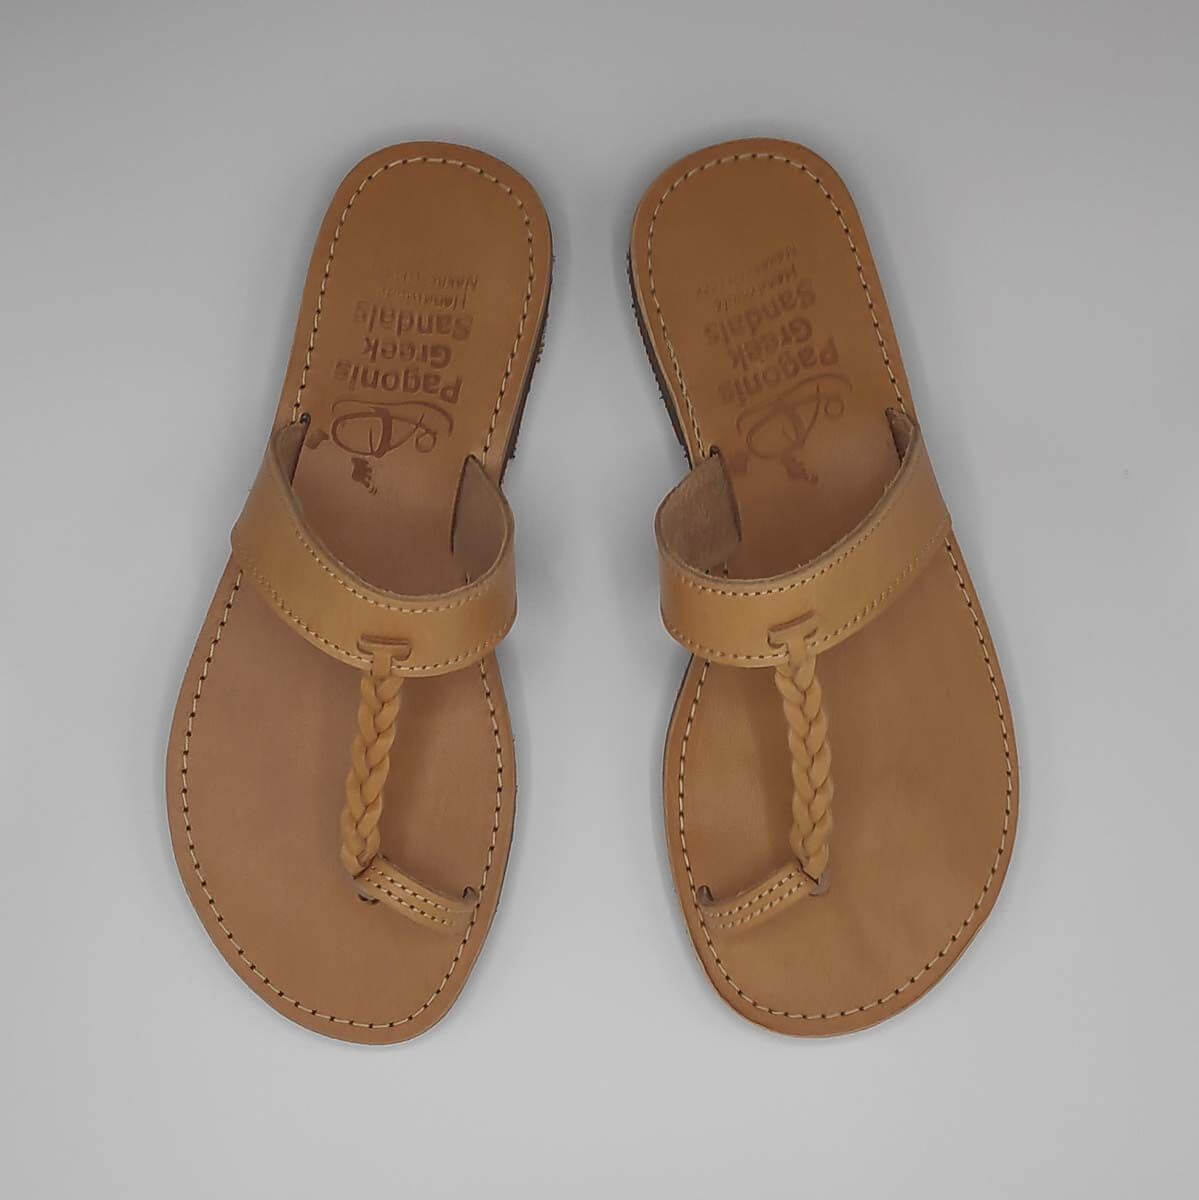 MIKRI VIGLA thong sandals | Pagonis Greek Sandals